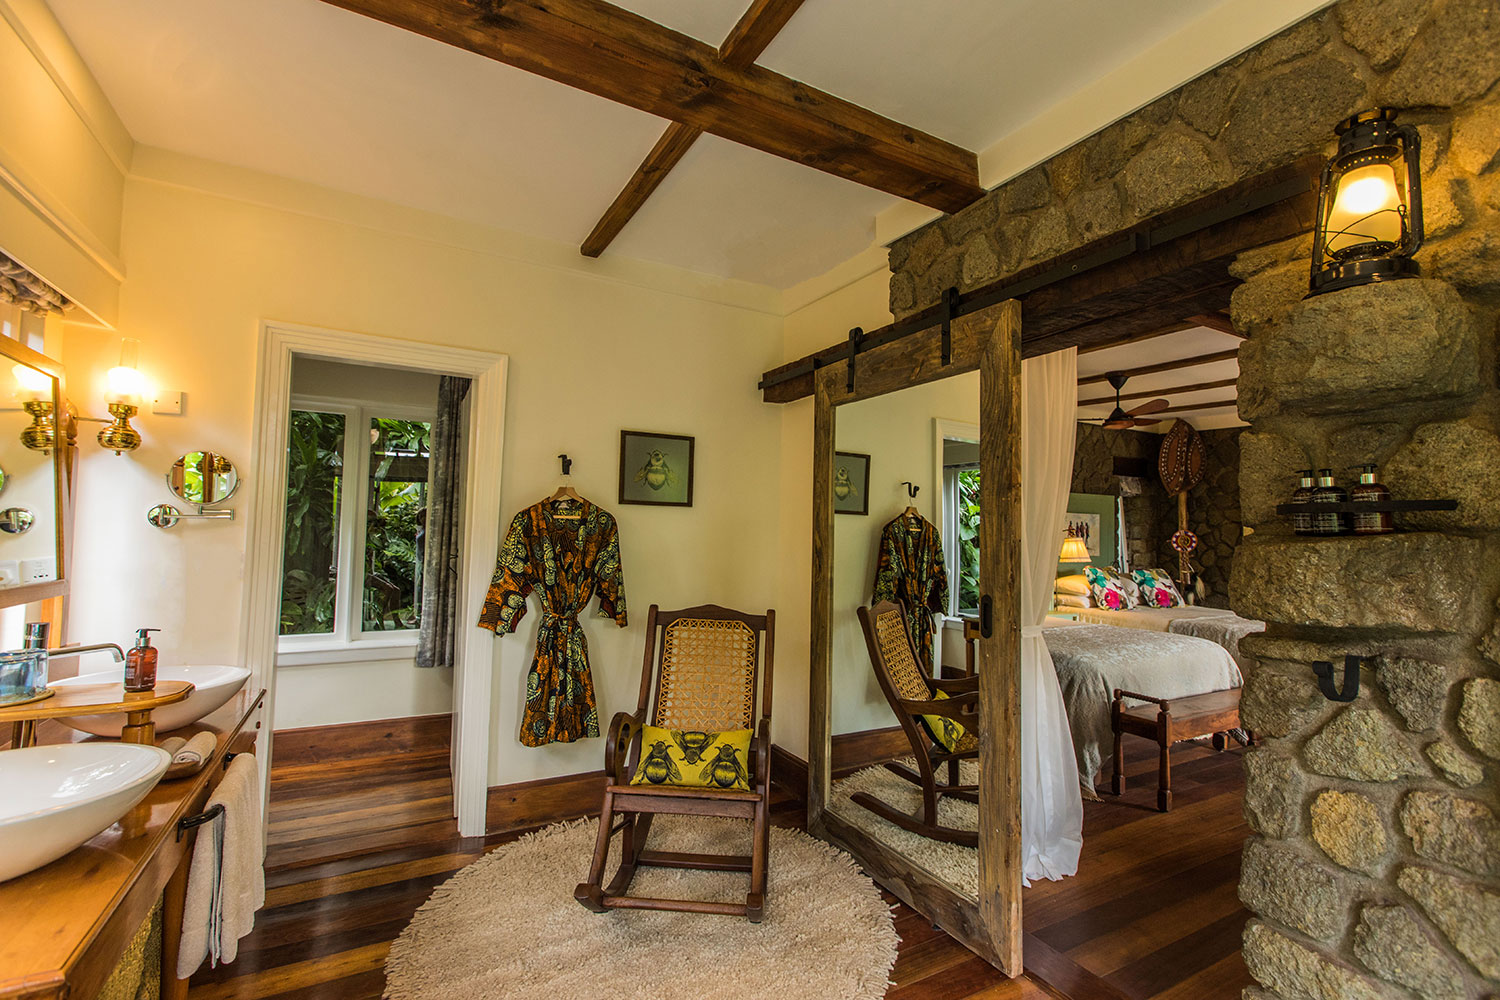 Gibb's Farm - Where to stay in Tanzania